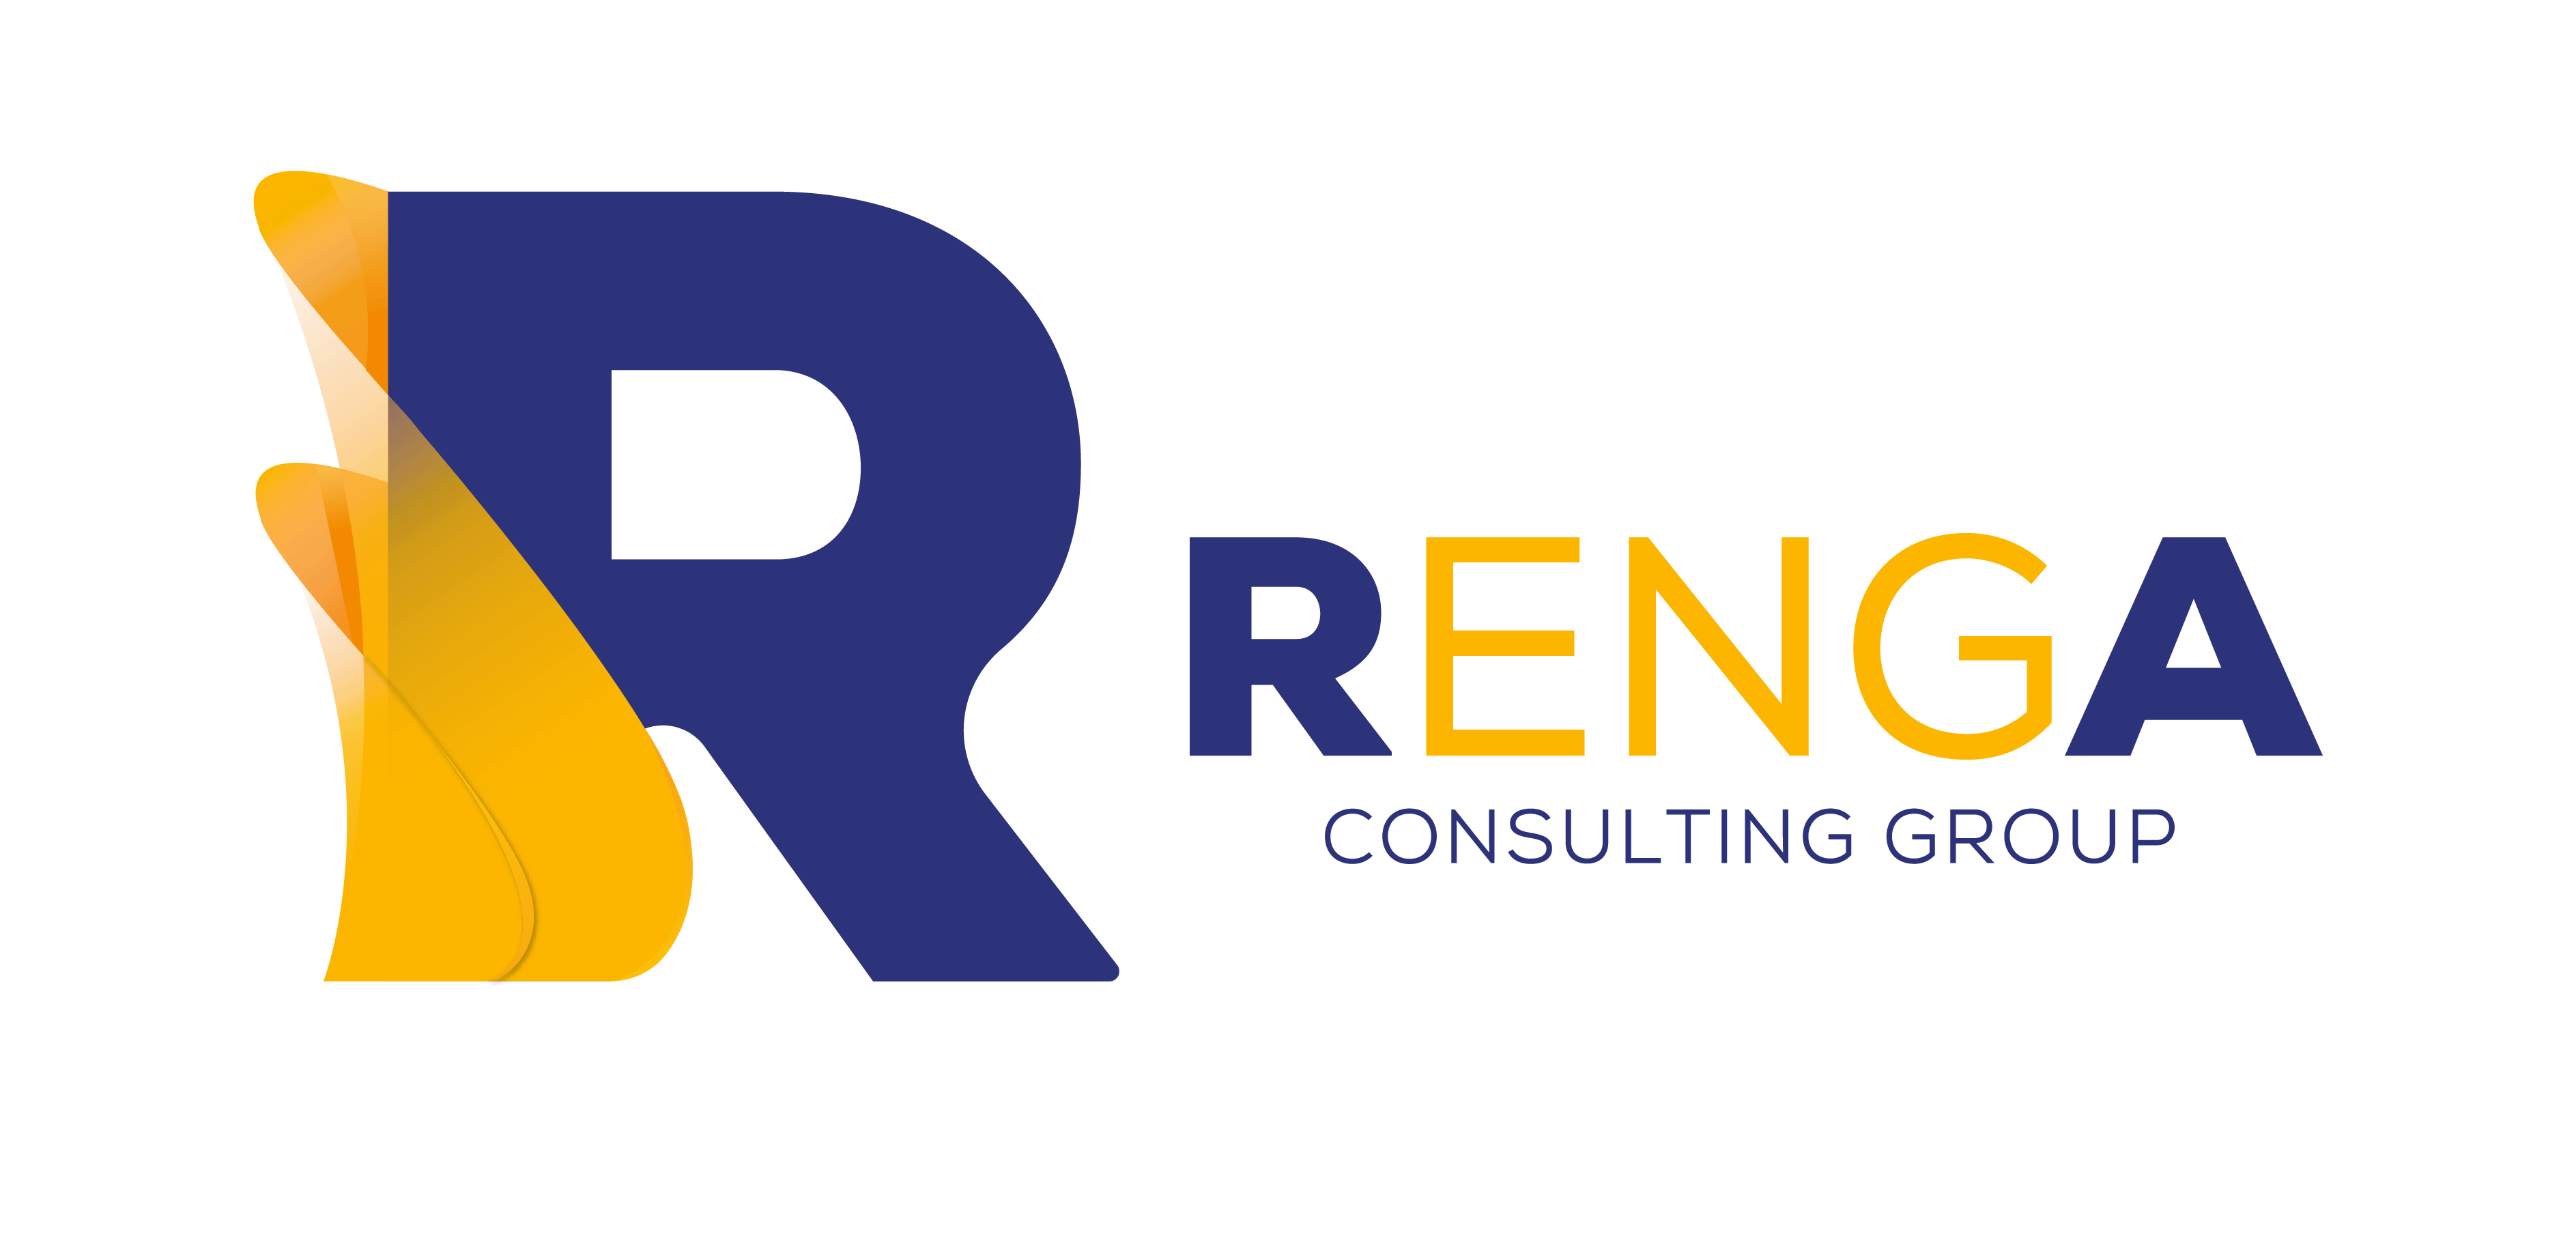 https://www.renga.com.co/wp-content/uploads/2020/05/RENGA-CONSULTING-GROUP.png